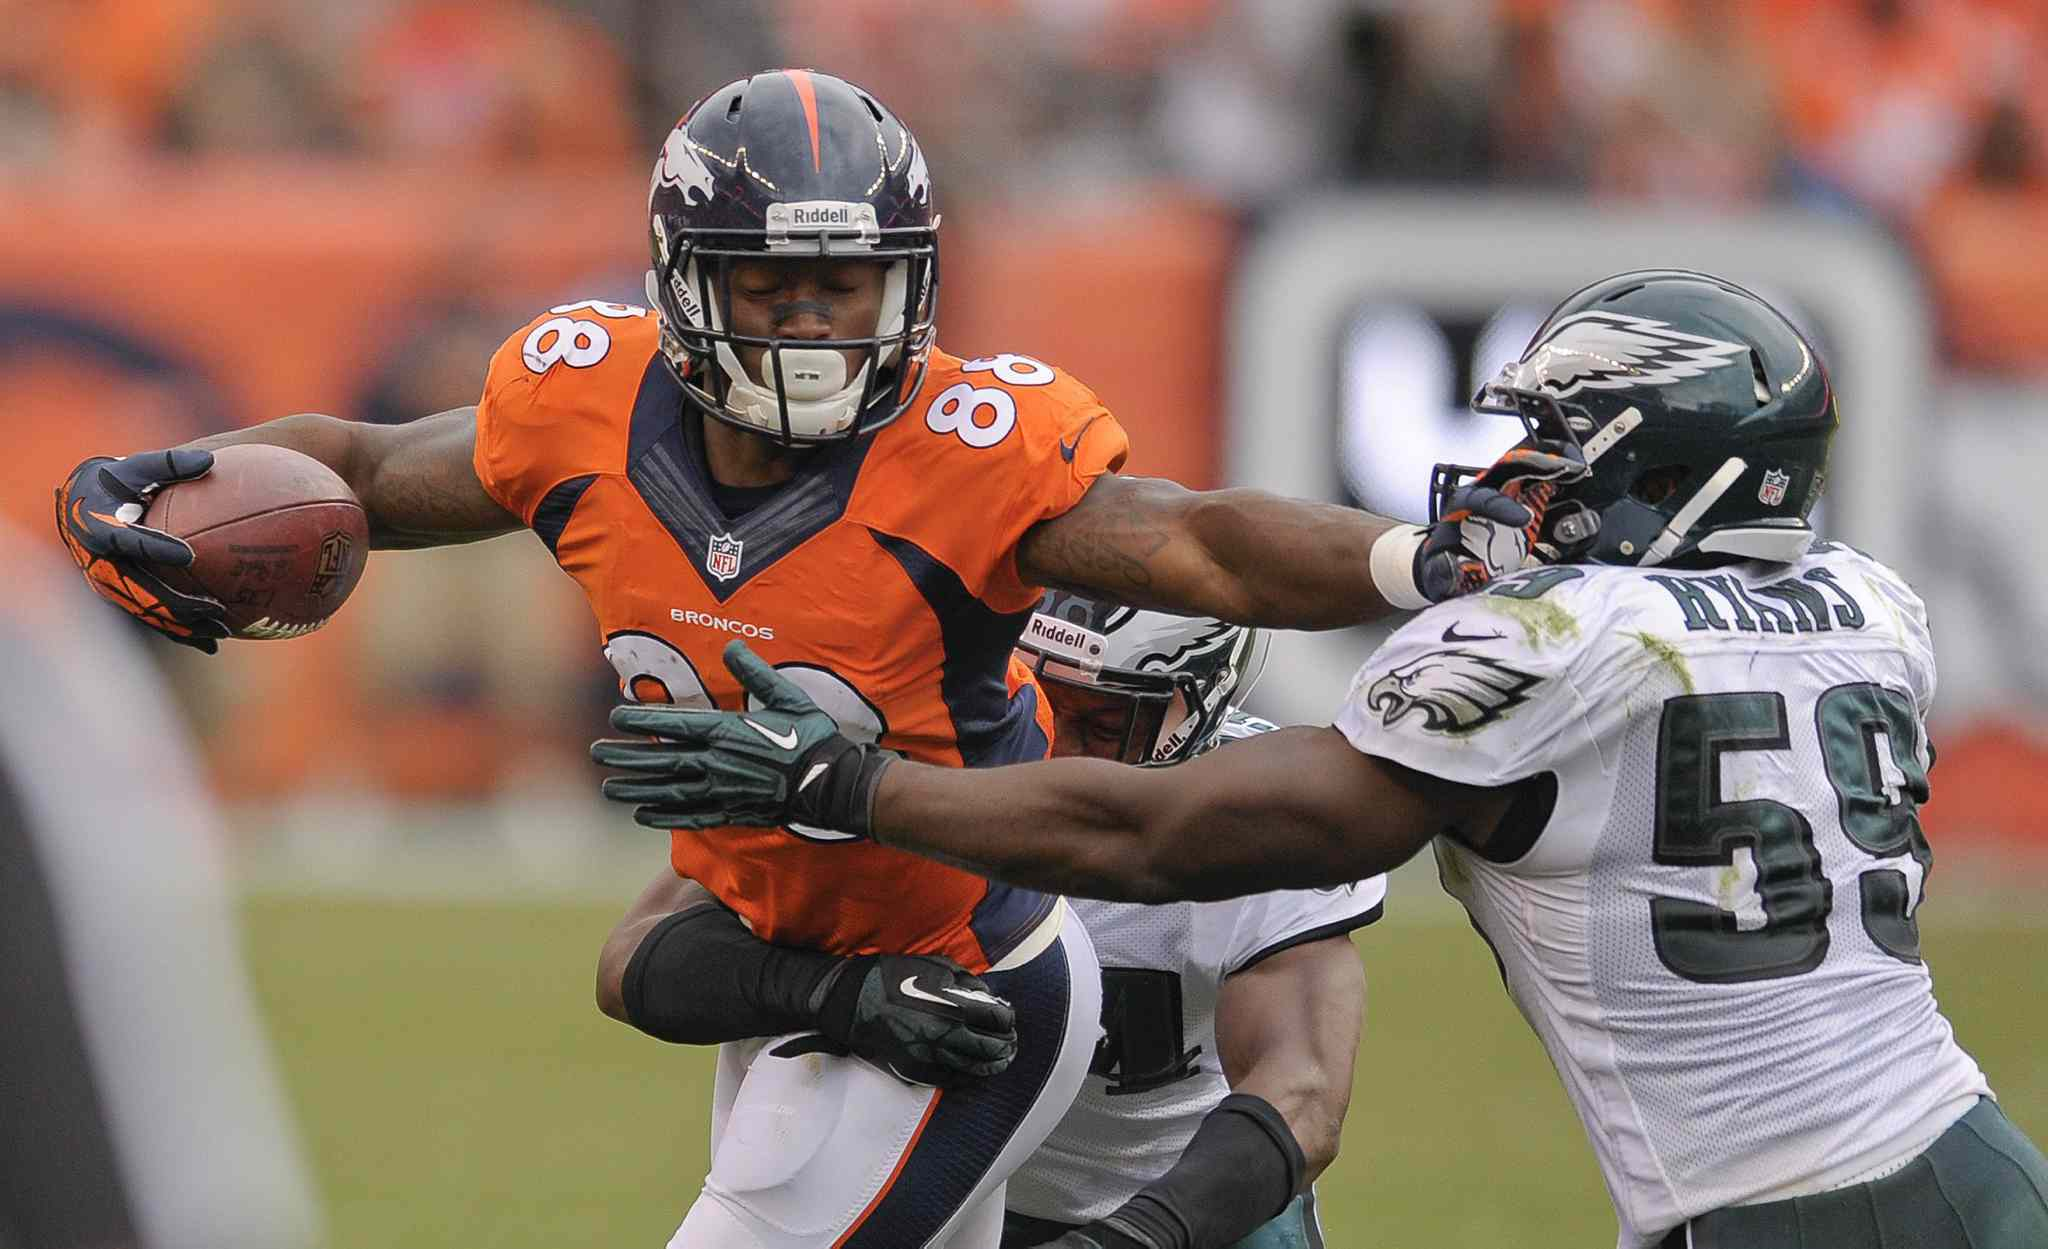 Denver Broncos wide receiver Demaryius Thomas (left) stiff arms Philadelphia Eagles linebacker DeMeco Ryans during the Broncos 52-20 win in Denver on Sunday.